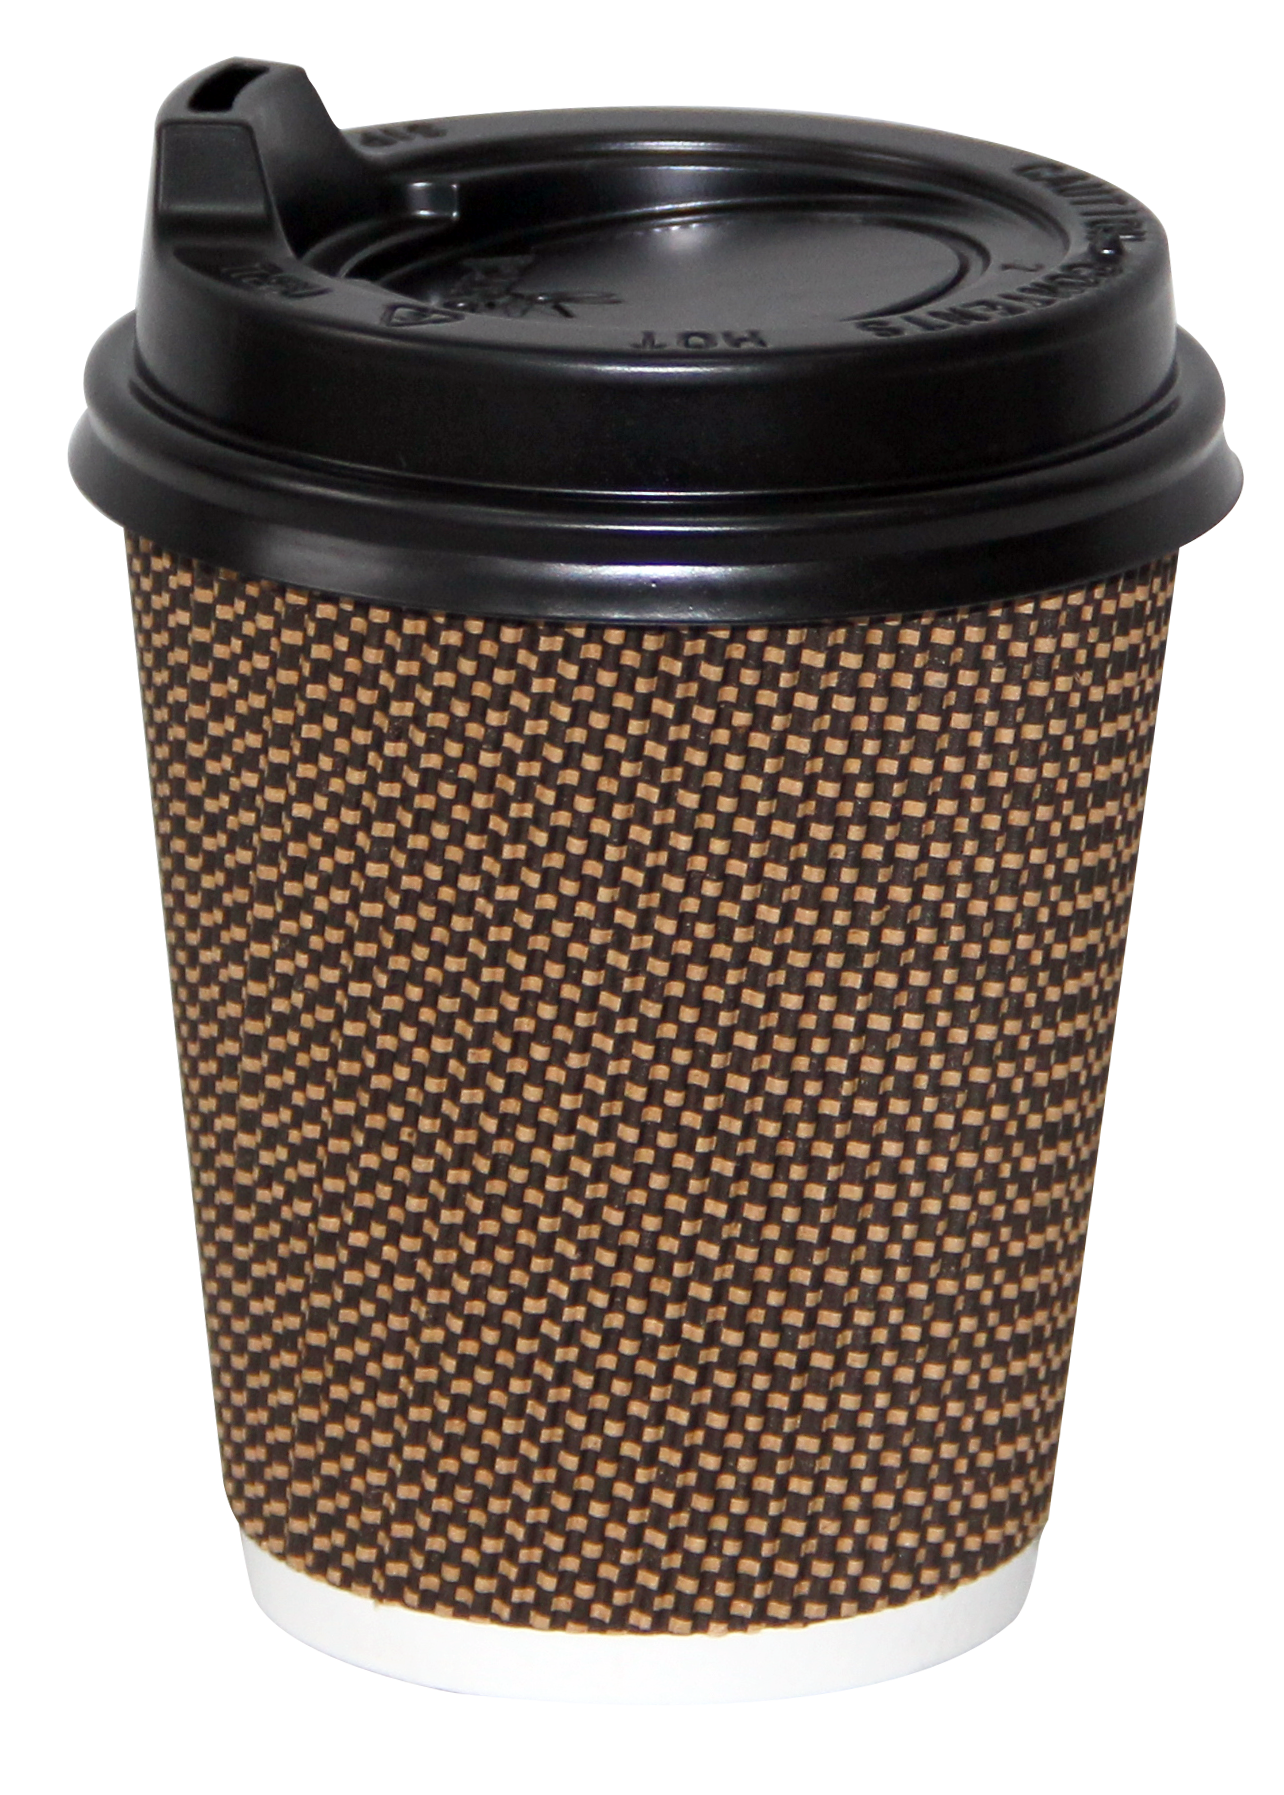 Velta Black 8oz Squat Coffee Cup